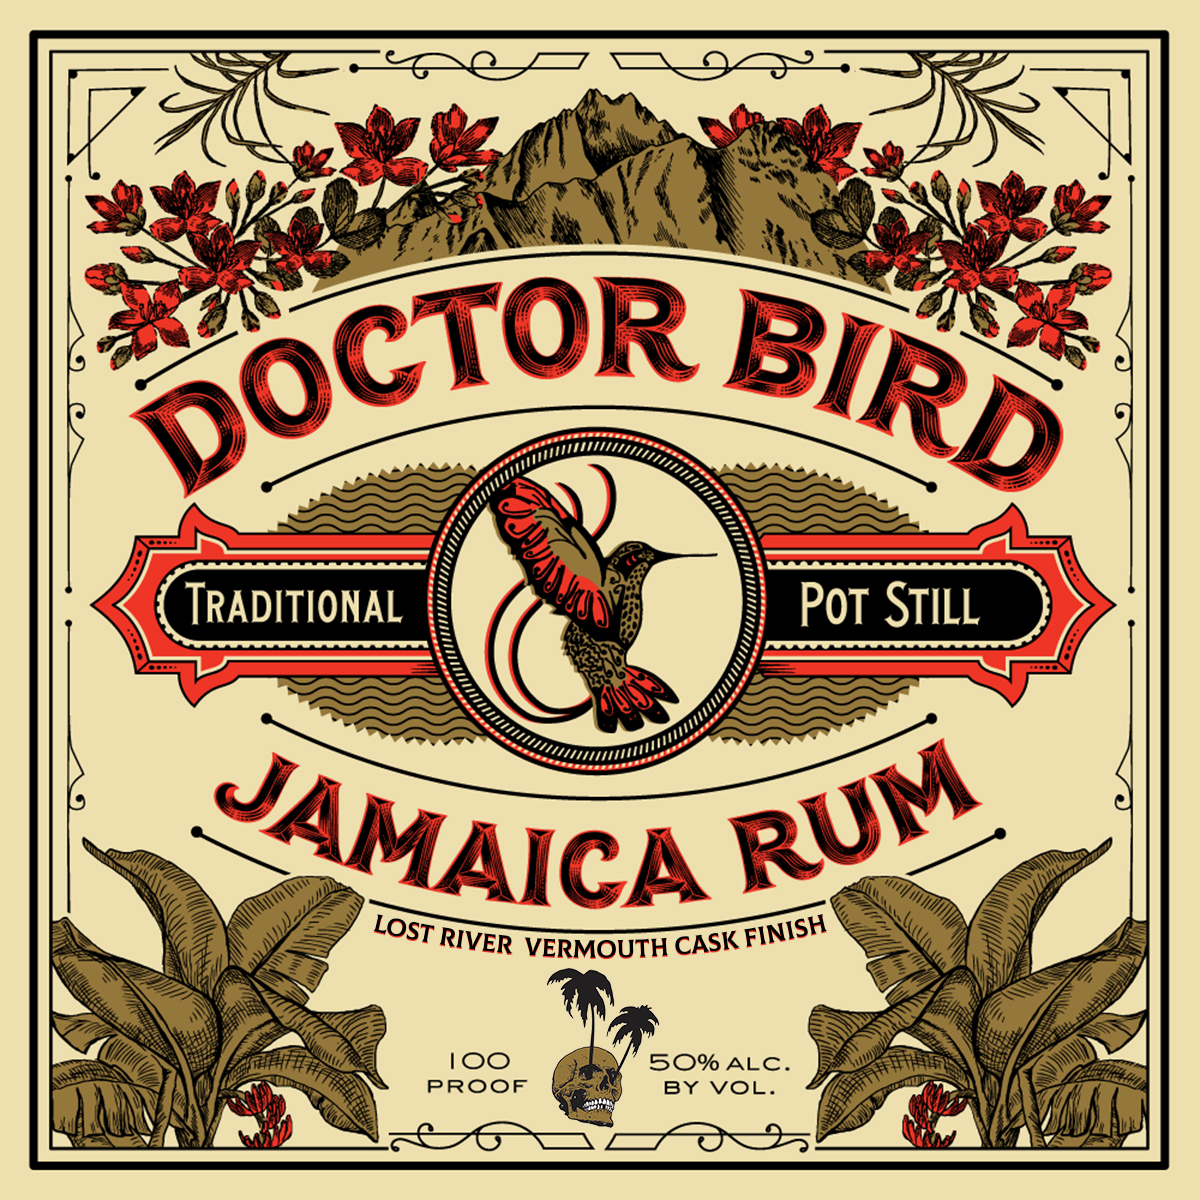 Lost River Vermouth Cask Doctor Bird Bottle (750 ML)